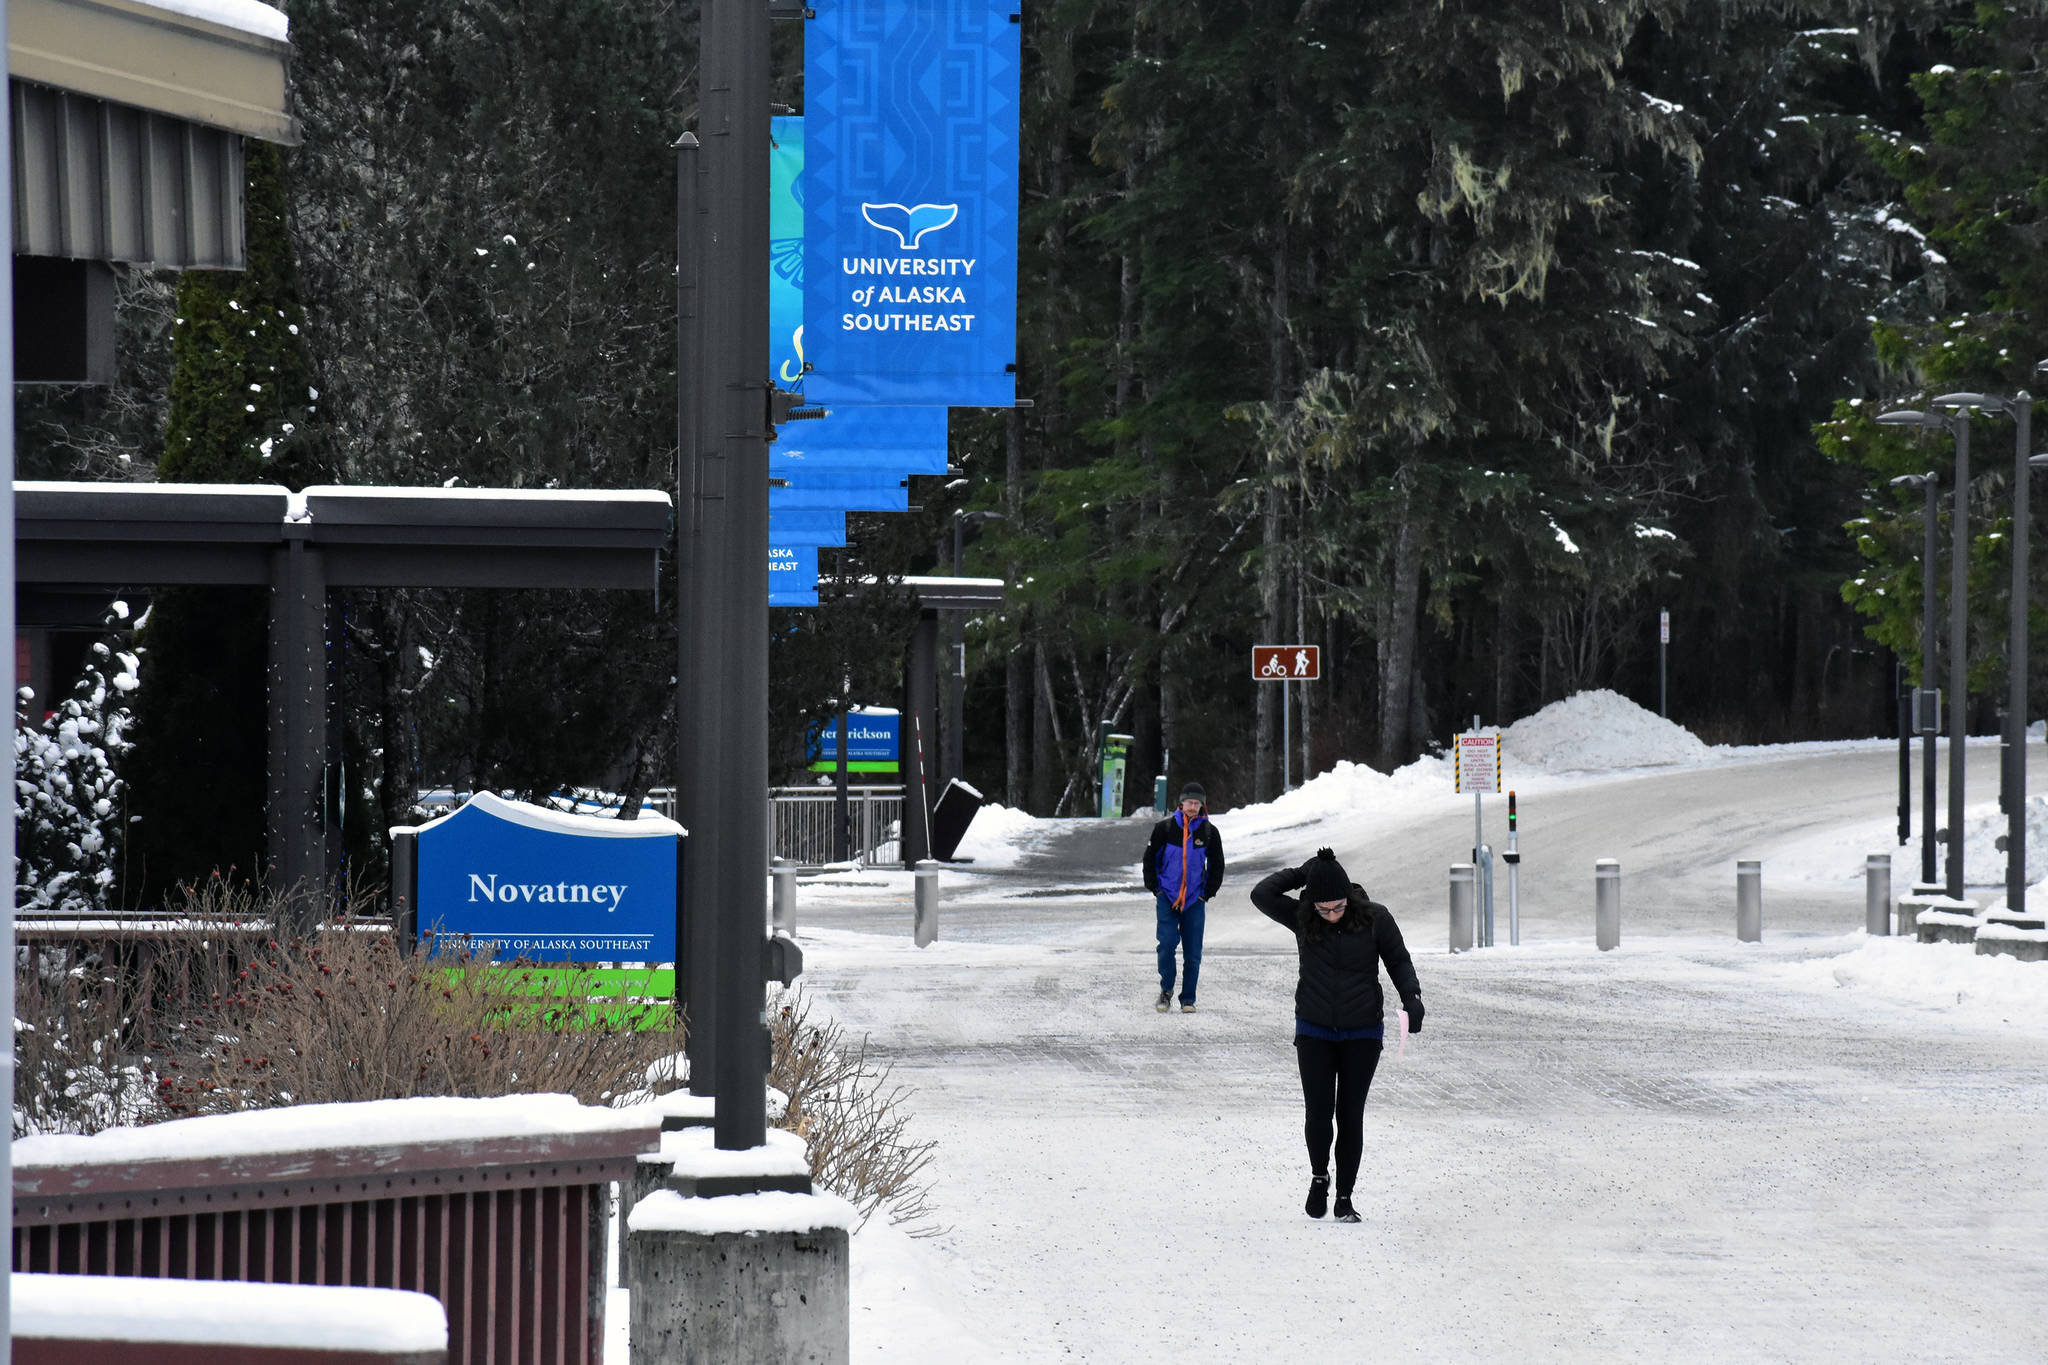 A student fixes her hood as she walks across the campus at the University of Alaska Southeast on Thursday, Jan. 16, 2020. (Peter Segall | Juneau Empire)